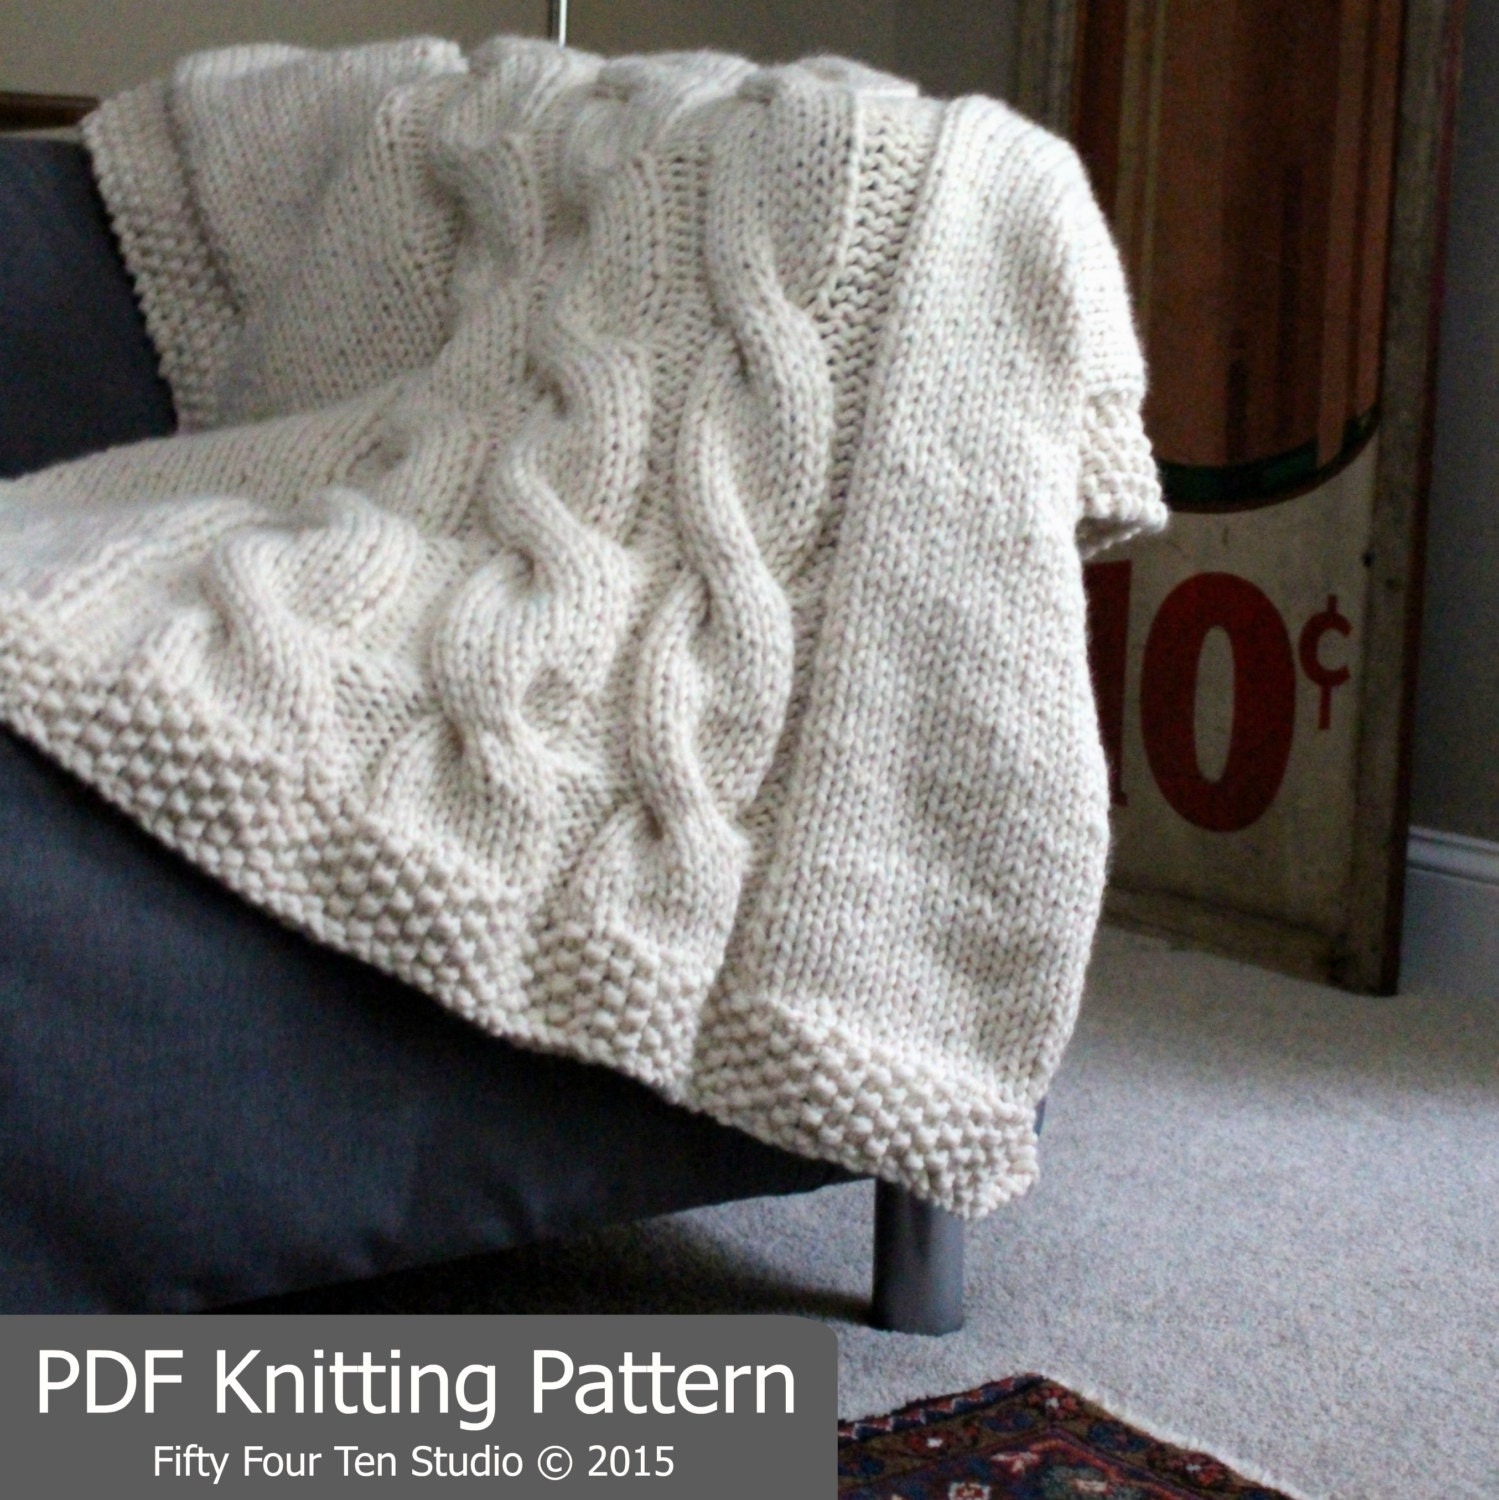 Knitting Pattern For A Throw Blanket : KNITTING PATTERN / Blanket / Throw / Cable Knit / Super Bulky